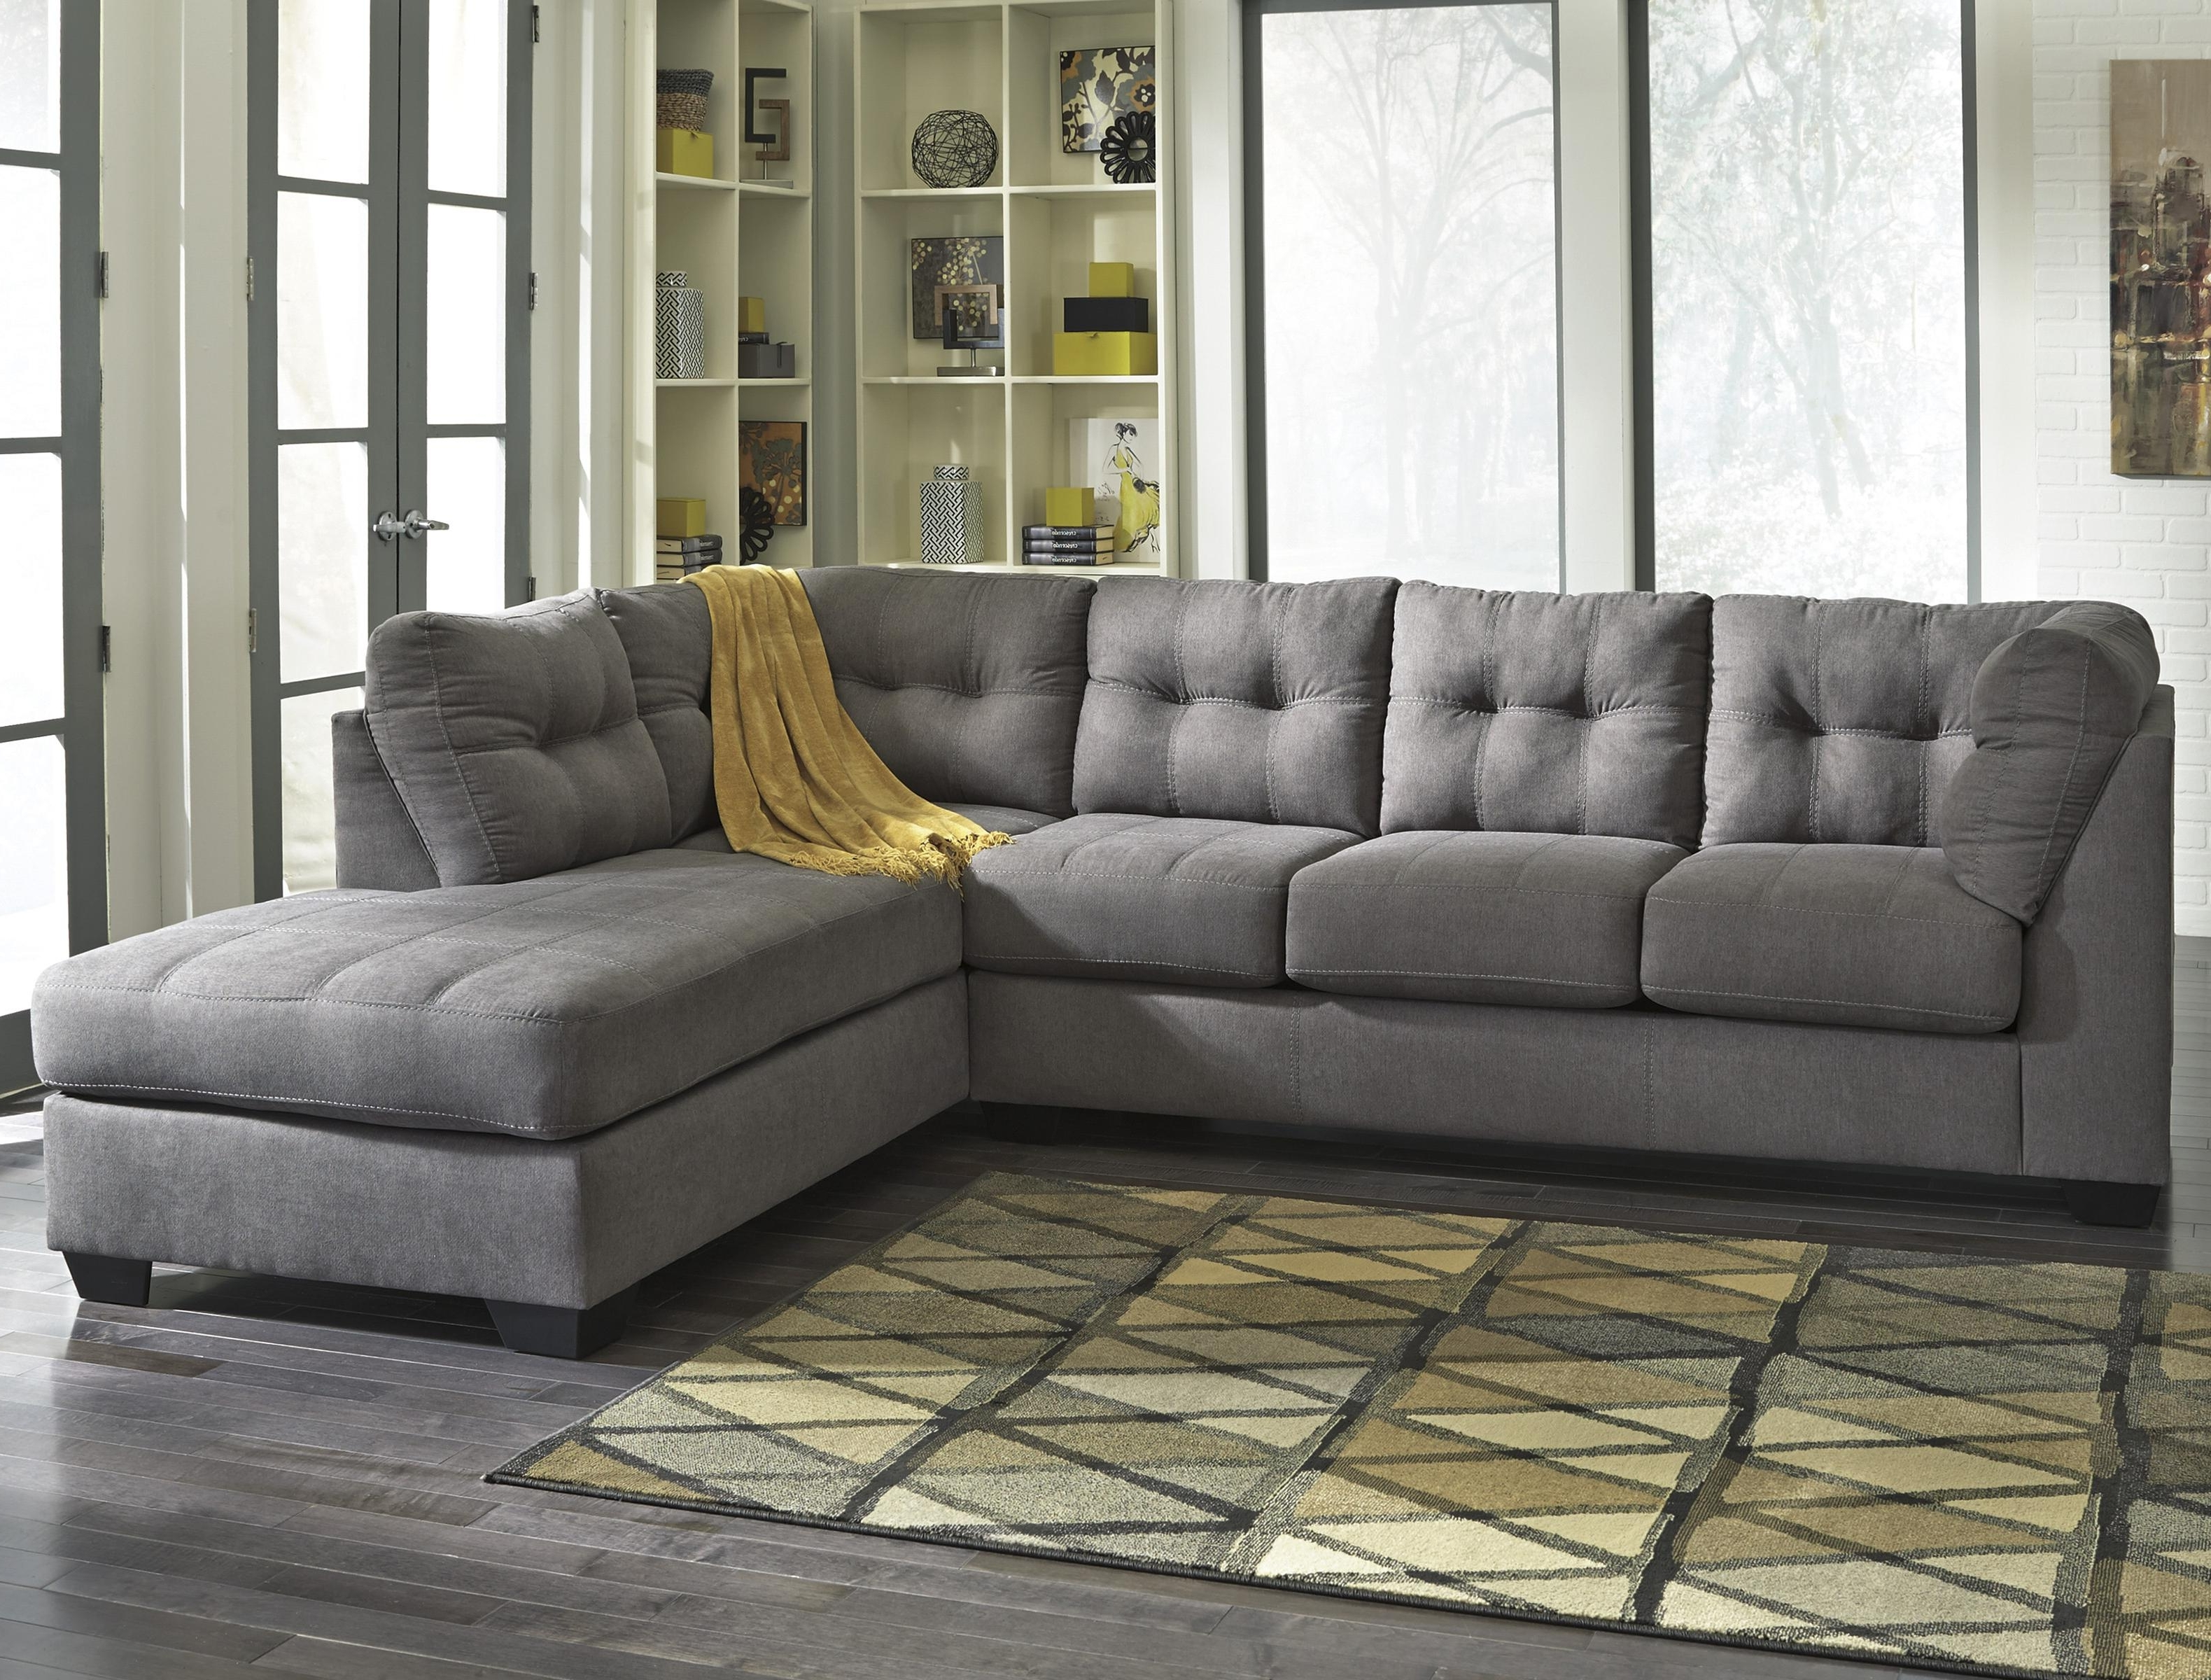 Featured Photo of Chaise Lounge Sectional Sofas